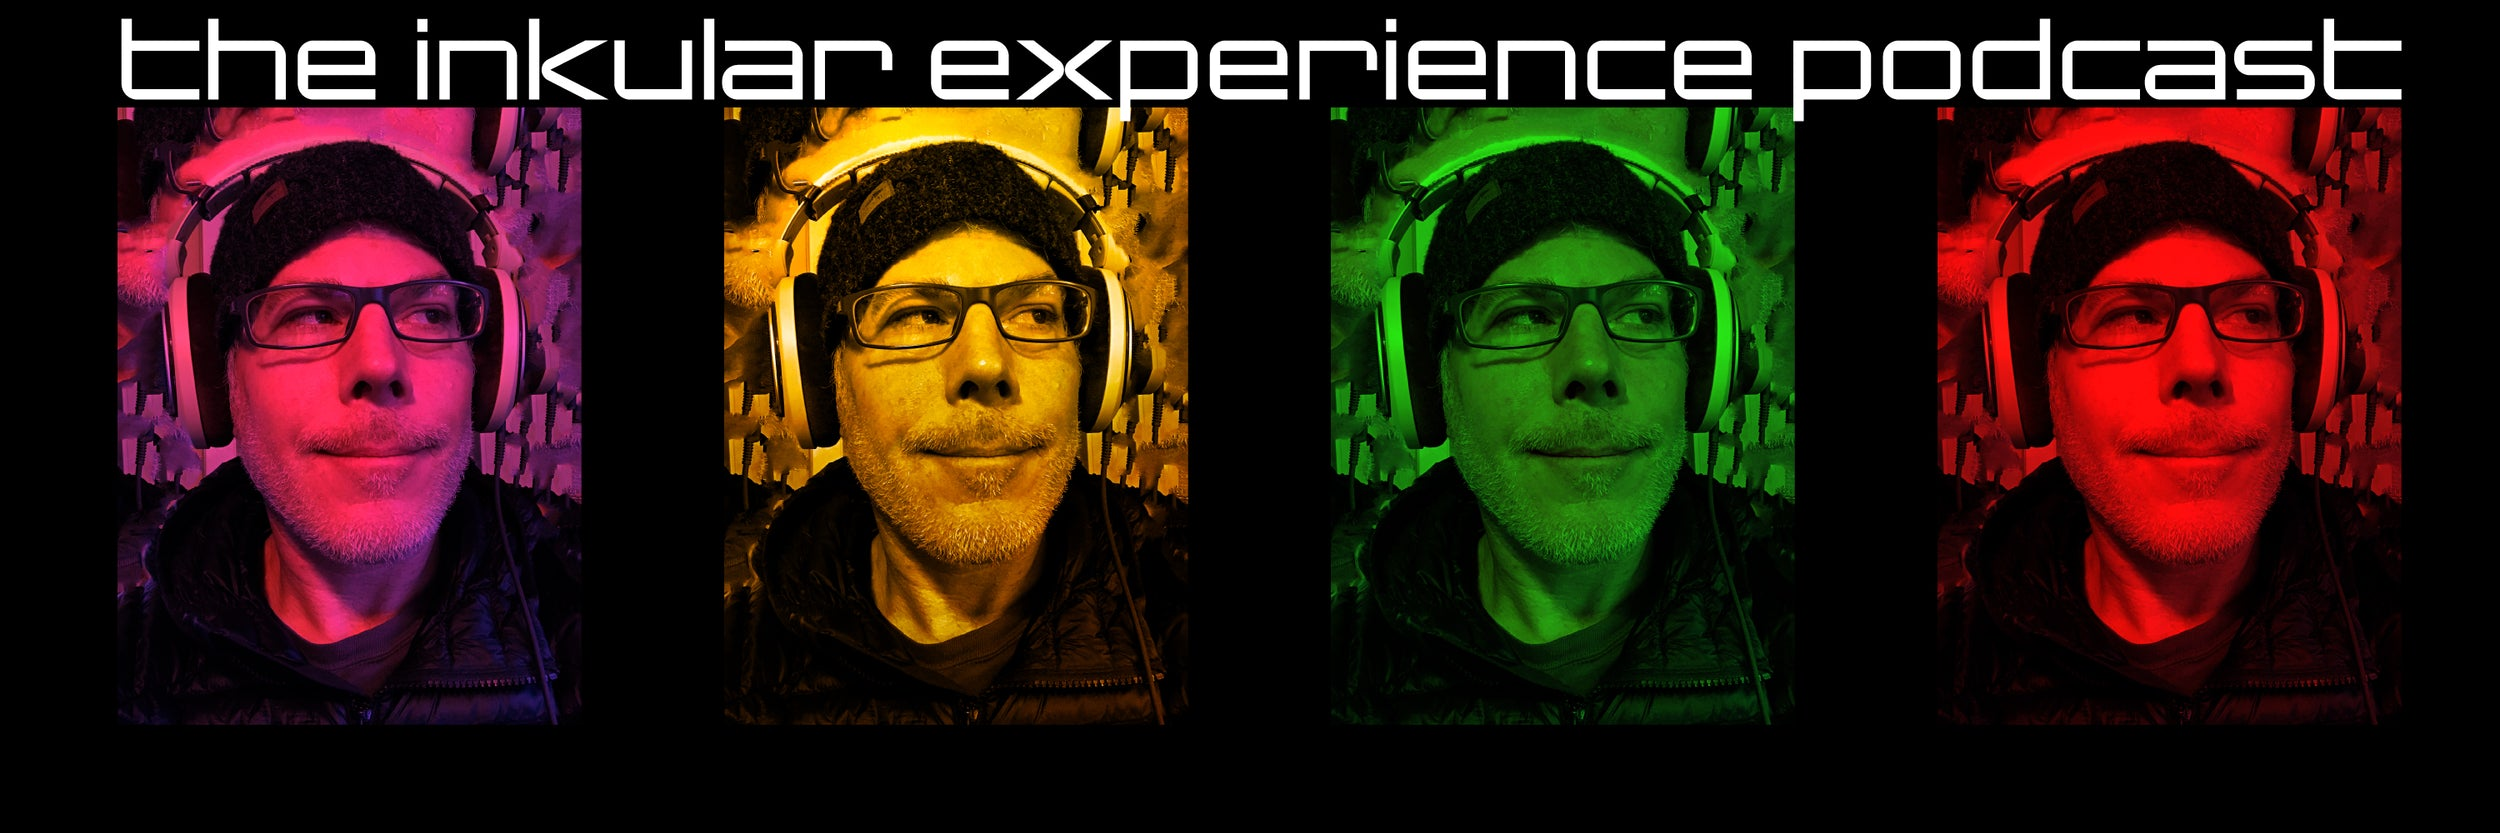 THE INKULAR® EXPERIENCE PODCAST